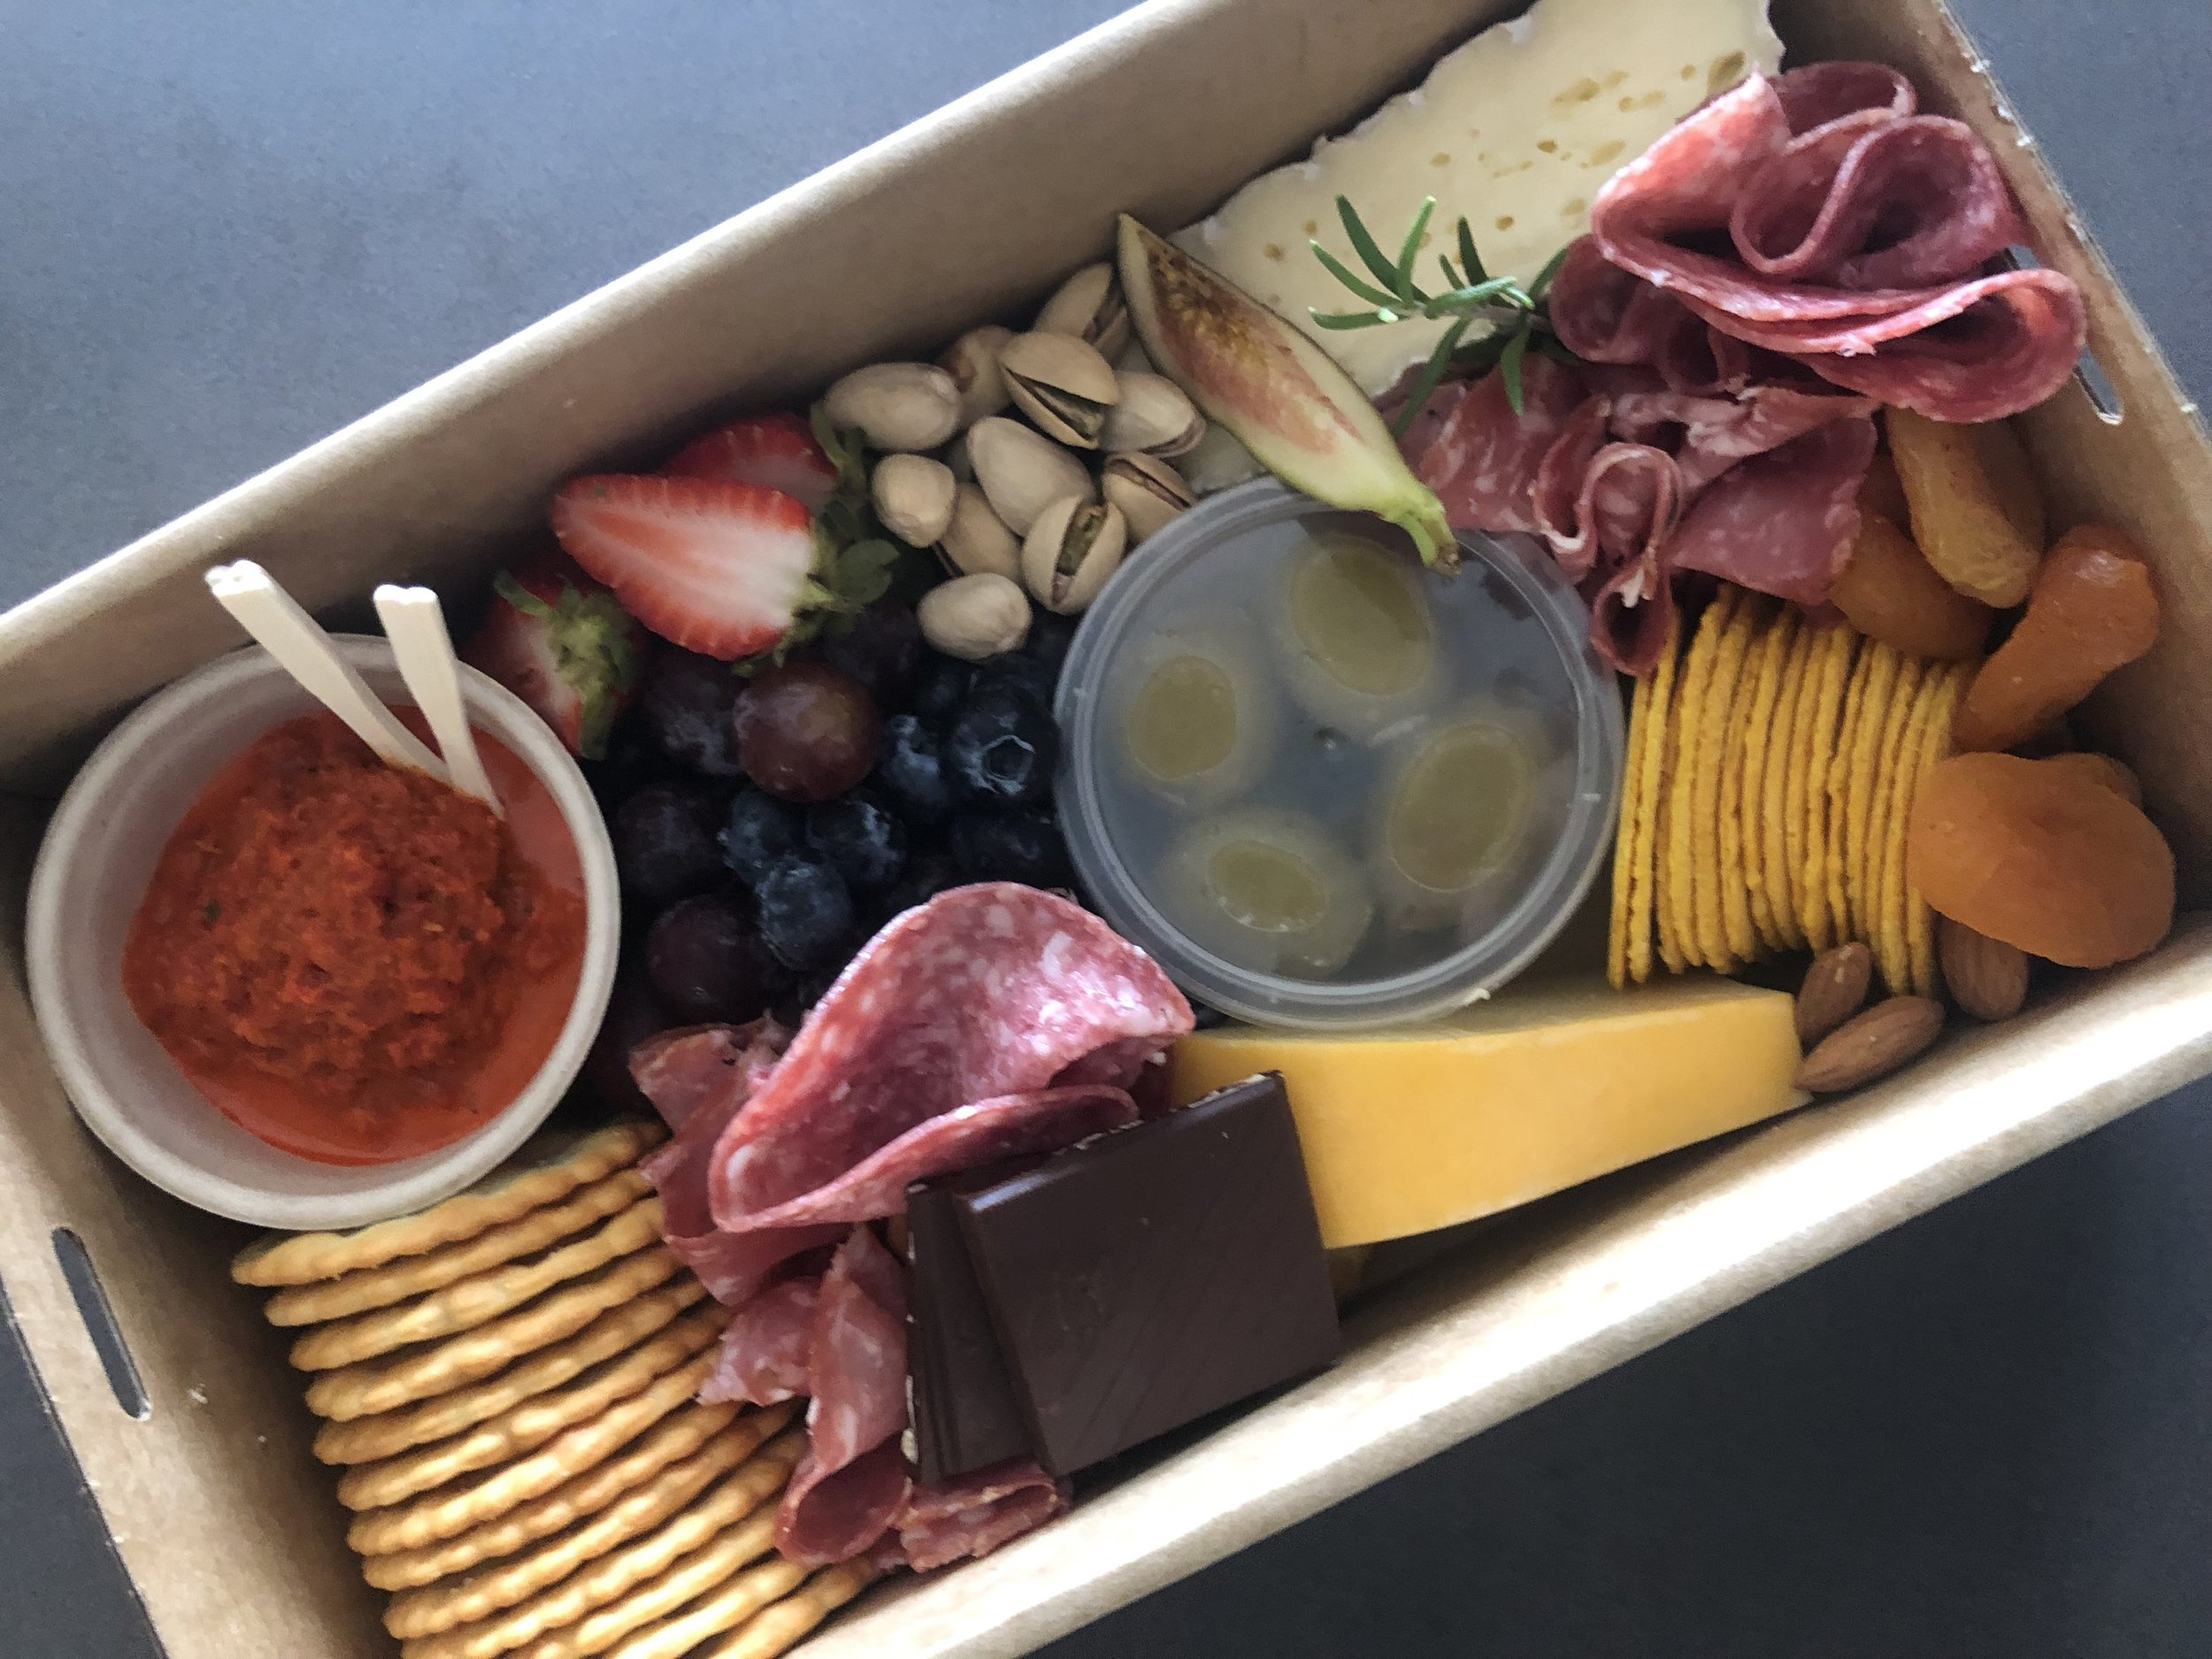 SMALL PLATTER BOX$50.00 - perfect grazing for 1 - 2 people(box size is 15 x 25cm)Filled with an assortment of cheese and delicious dips, crackers, cured meats, assortment of fresh seasonal fruit, nuts, with a touch of something sweet. Garnished with fresh rosemary from our grandma's garden.